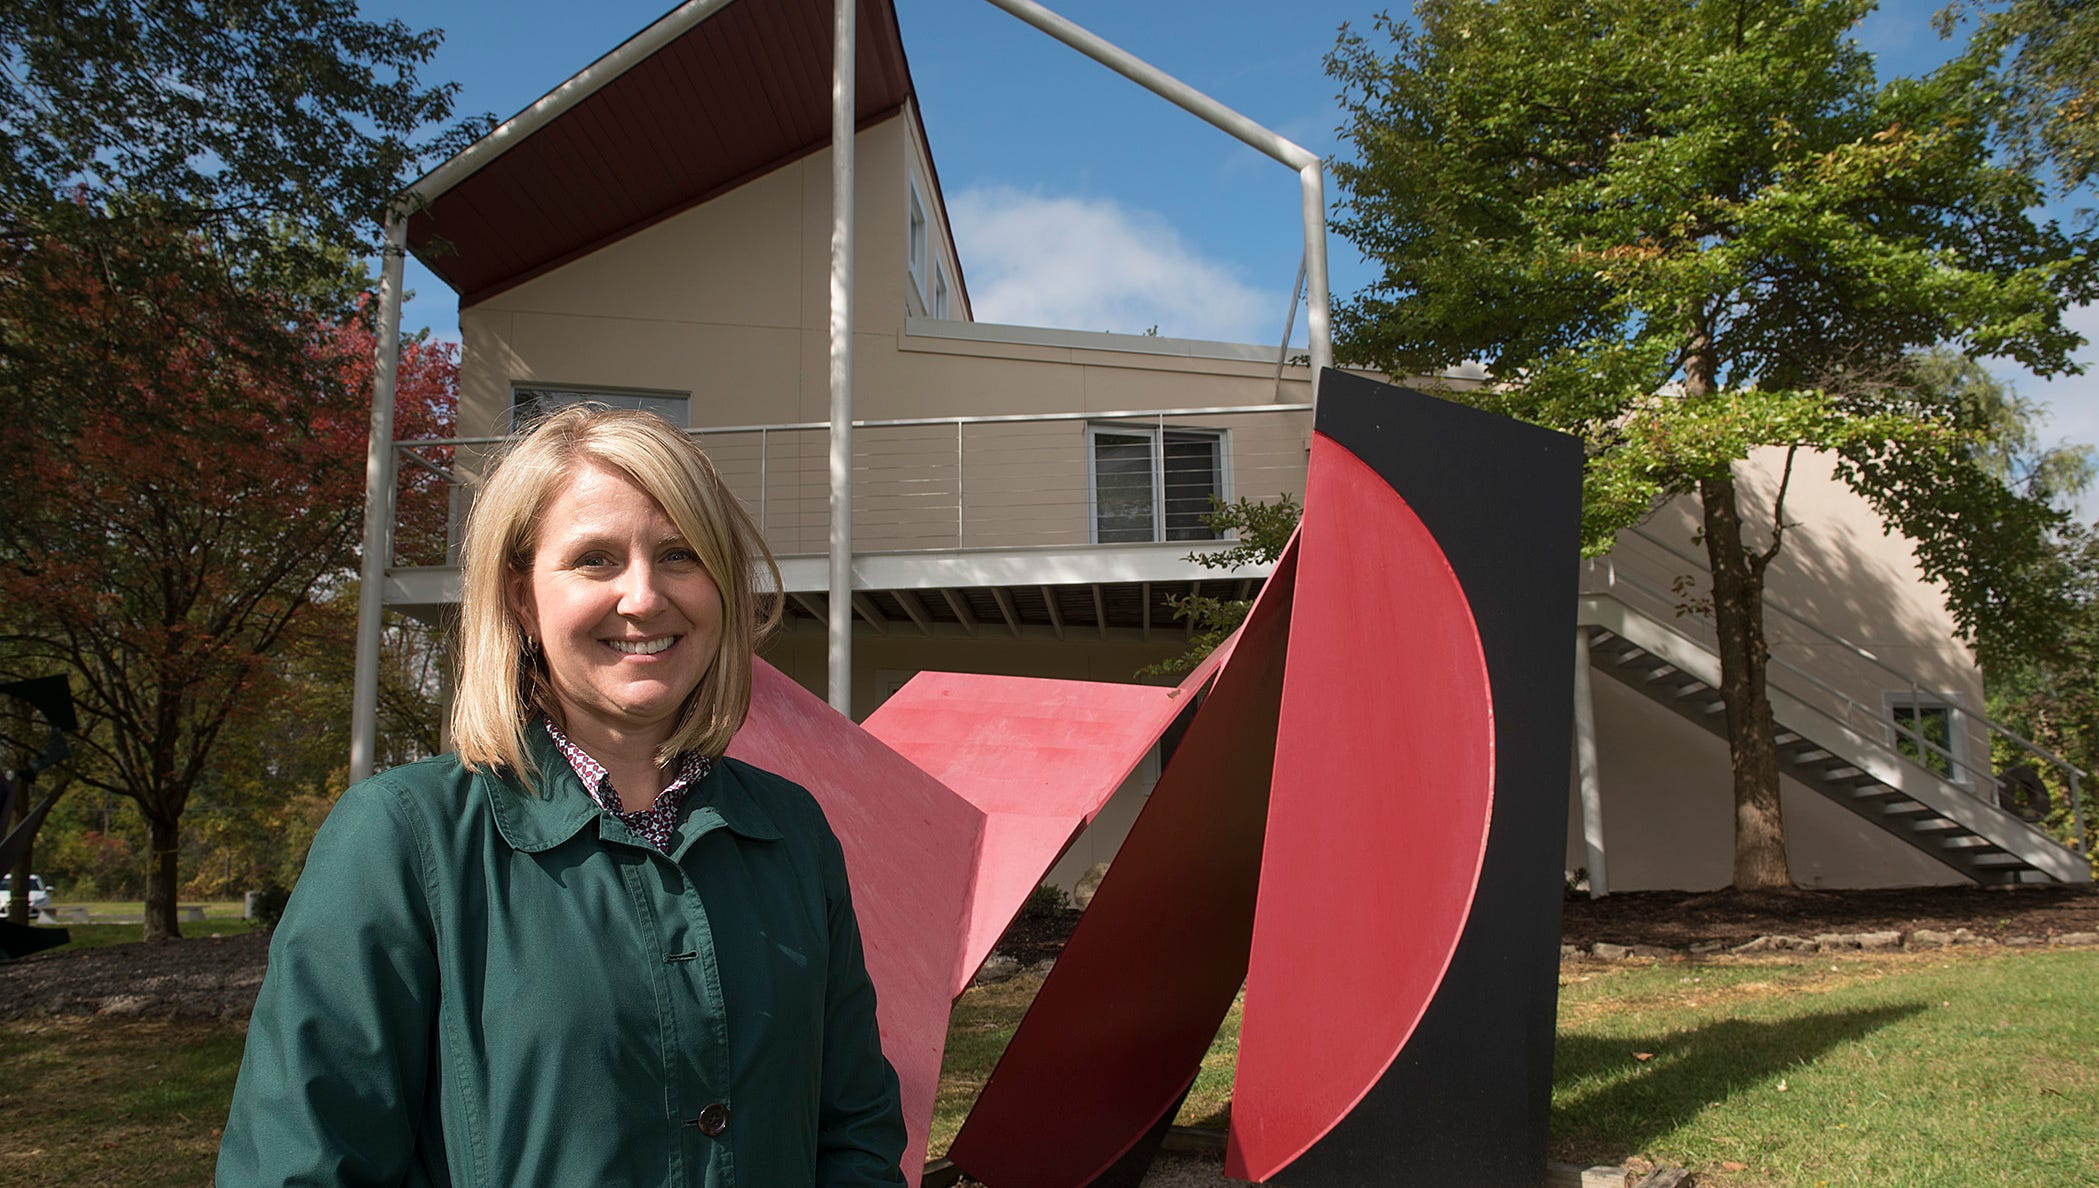 Tracie Ringle is Deputy Director of Novi Parks. The work behind her is Structurist Sculpture No. 10.